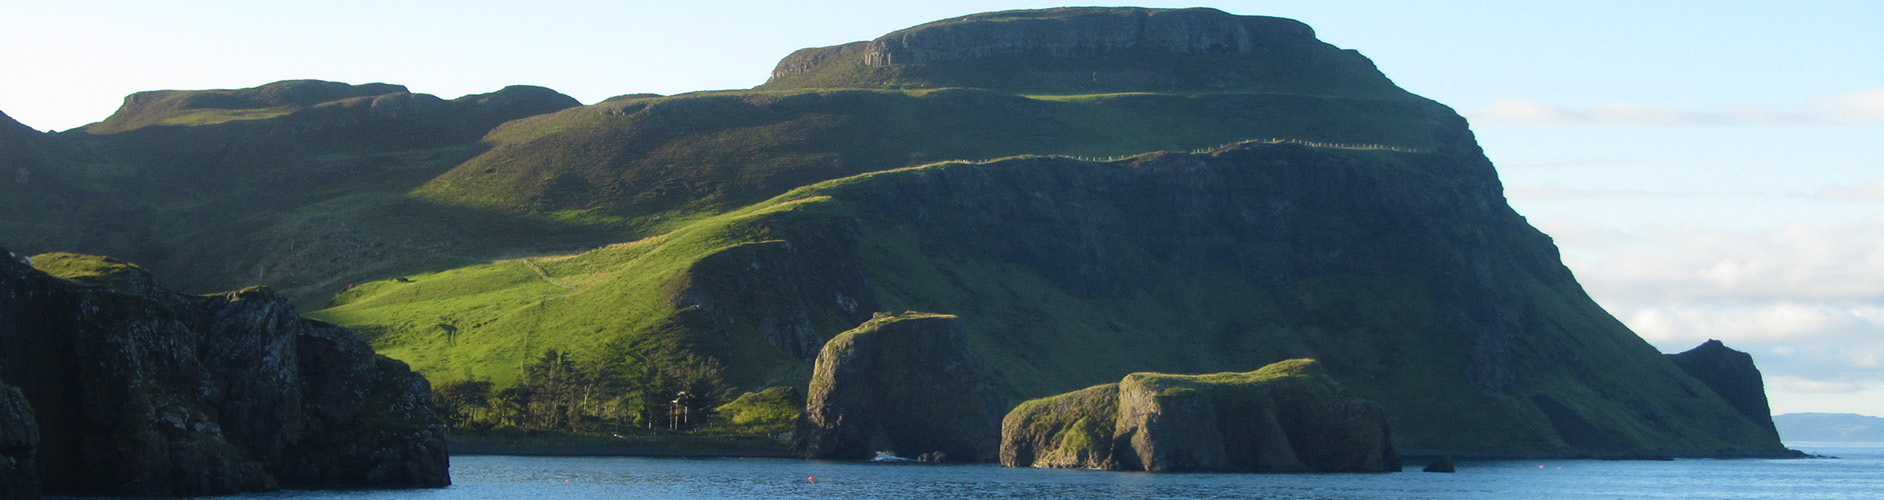 Hebrides Cruise | St. Kilda Explorer Cruise